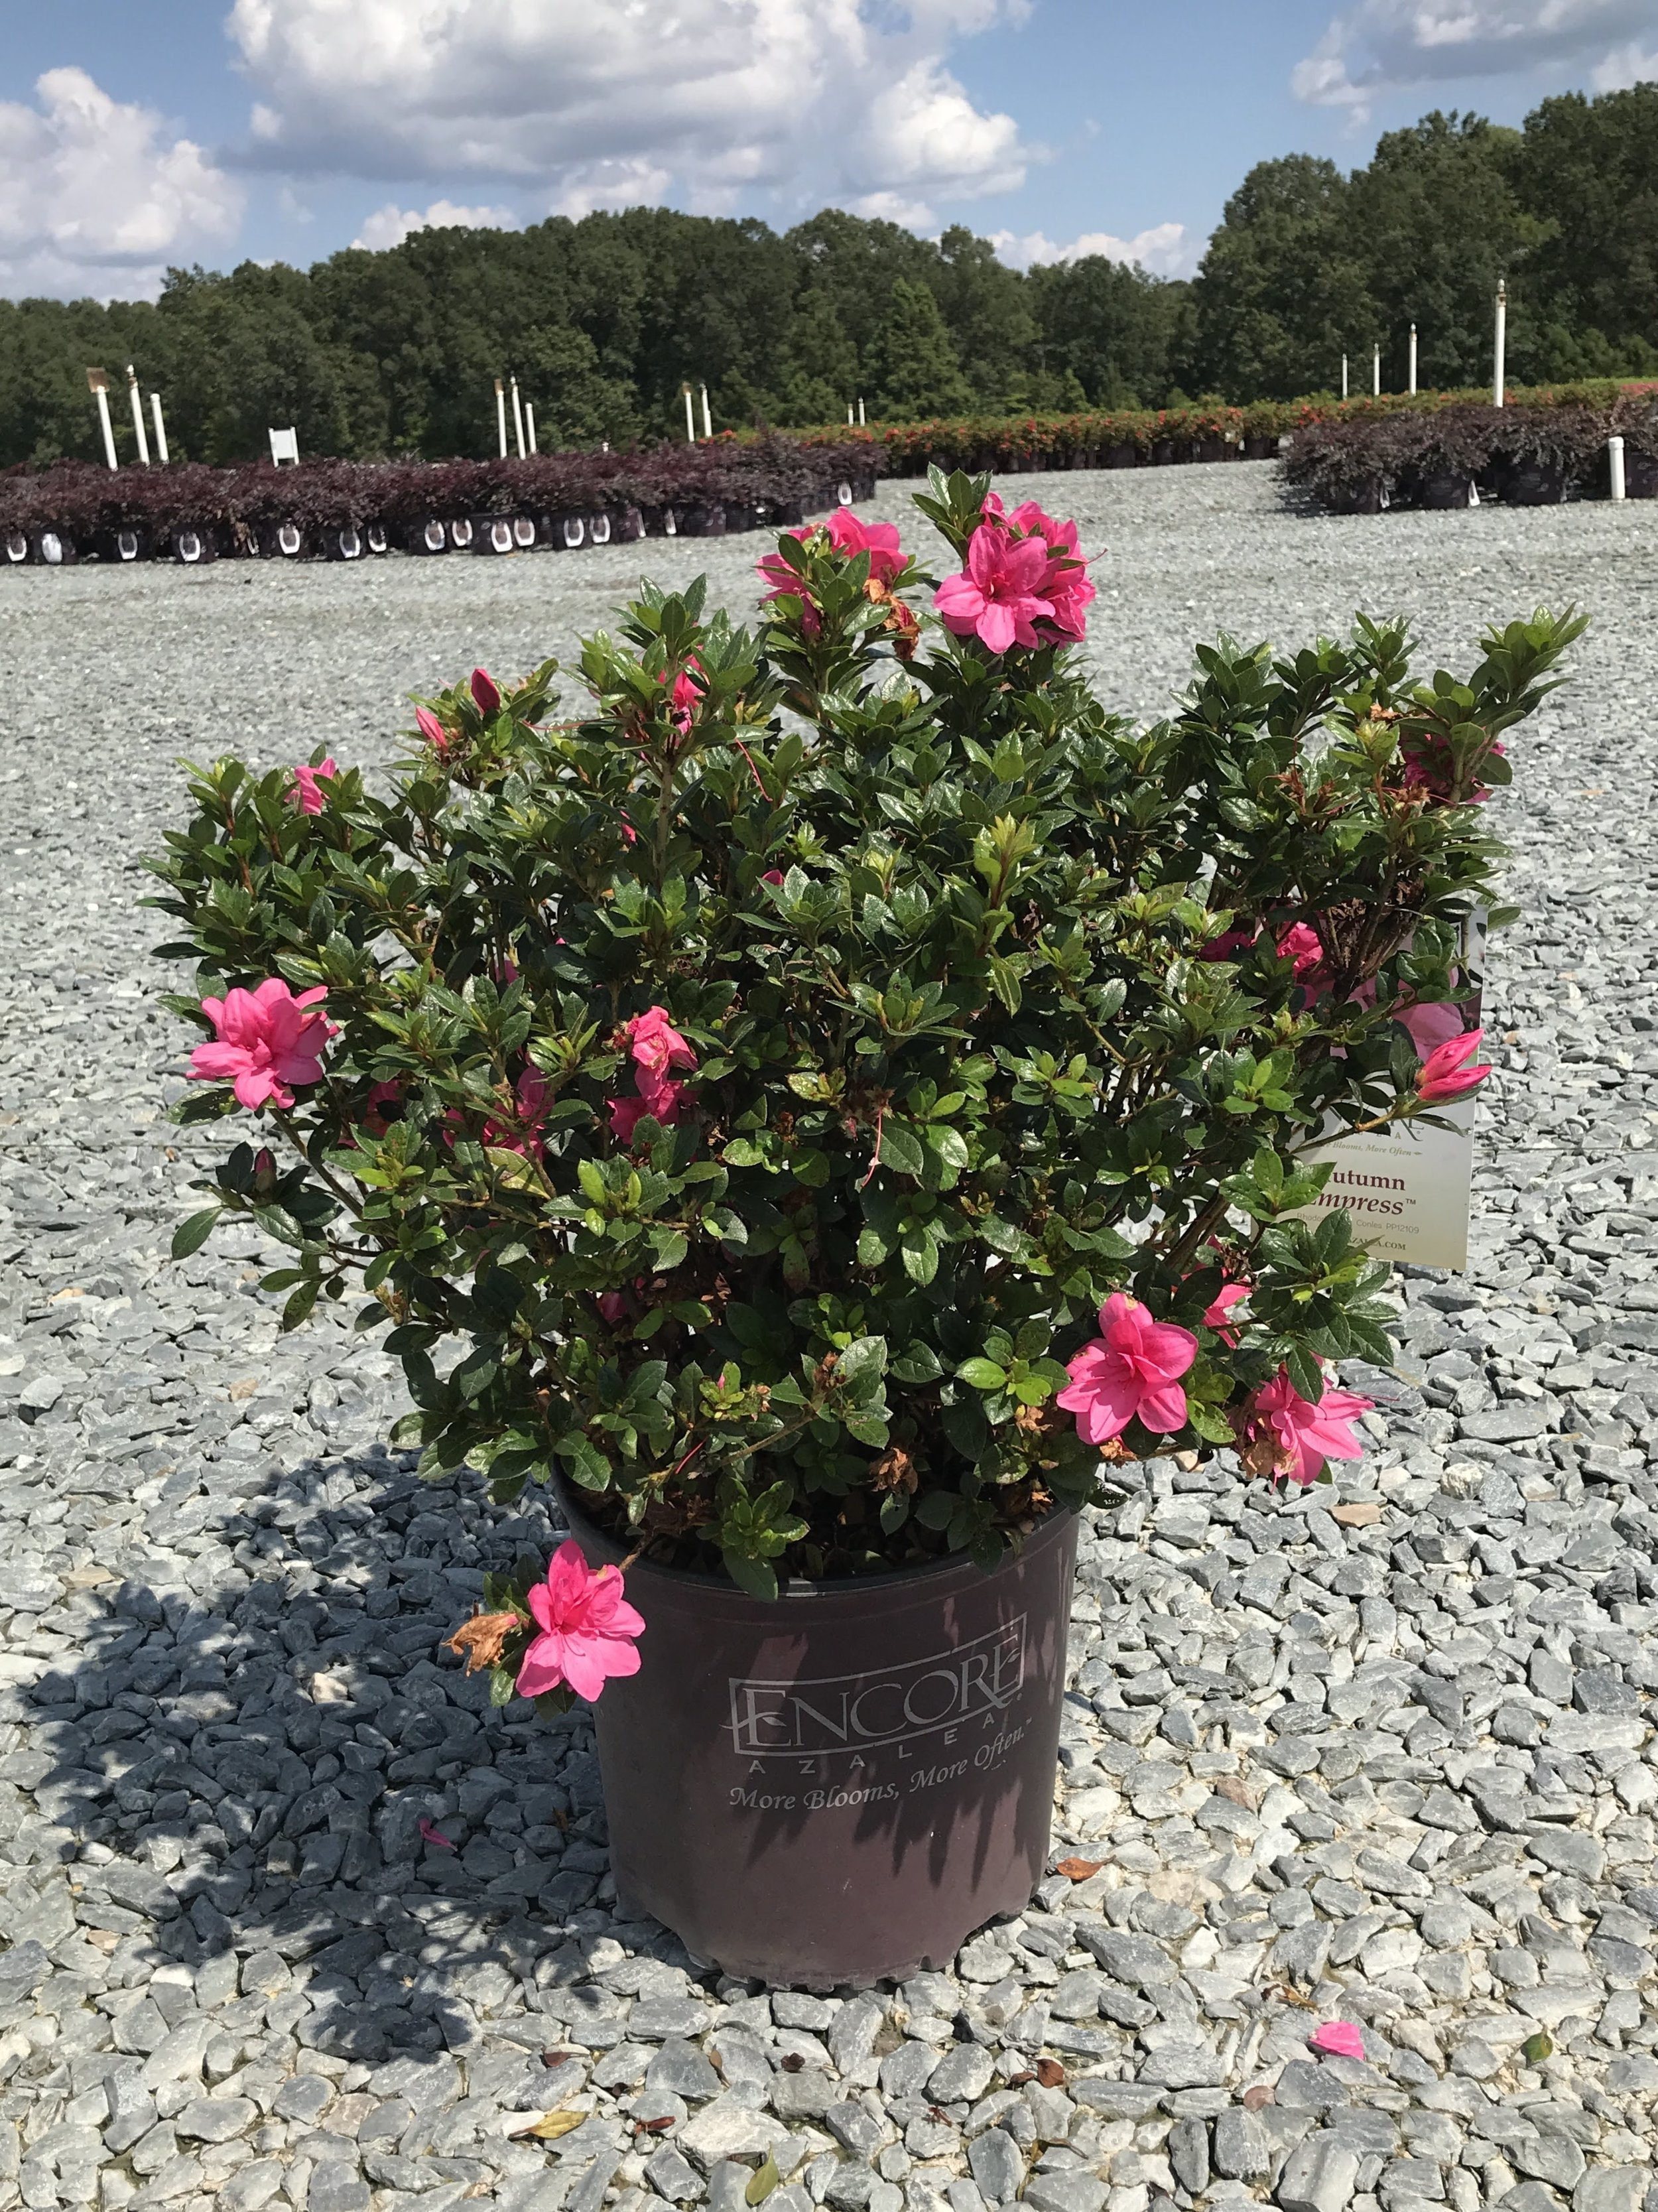 Autumn Empress Encore Azalea 3 gallon